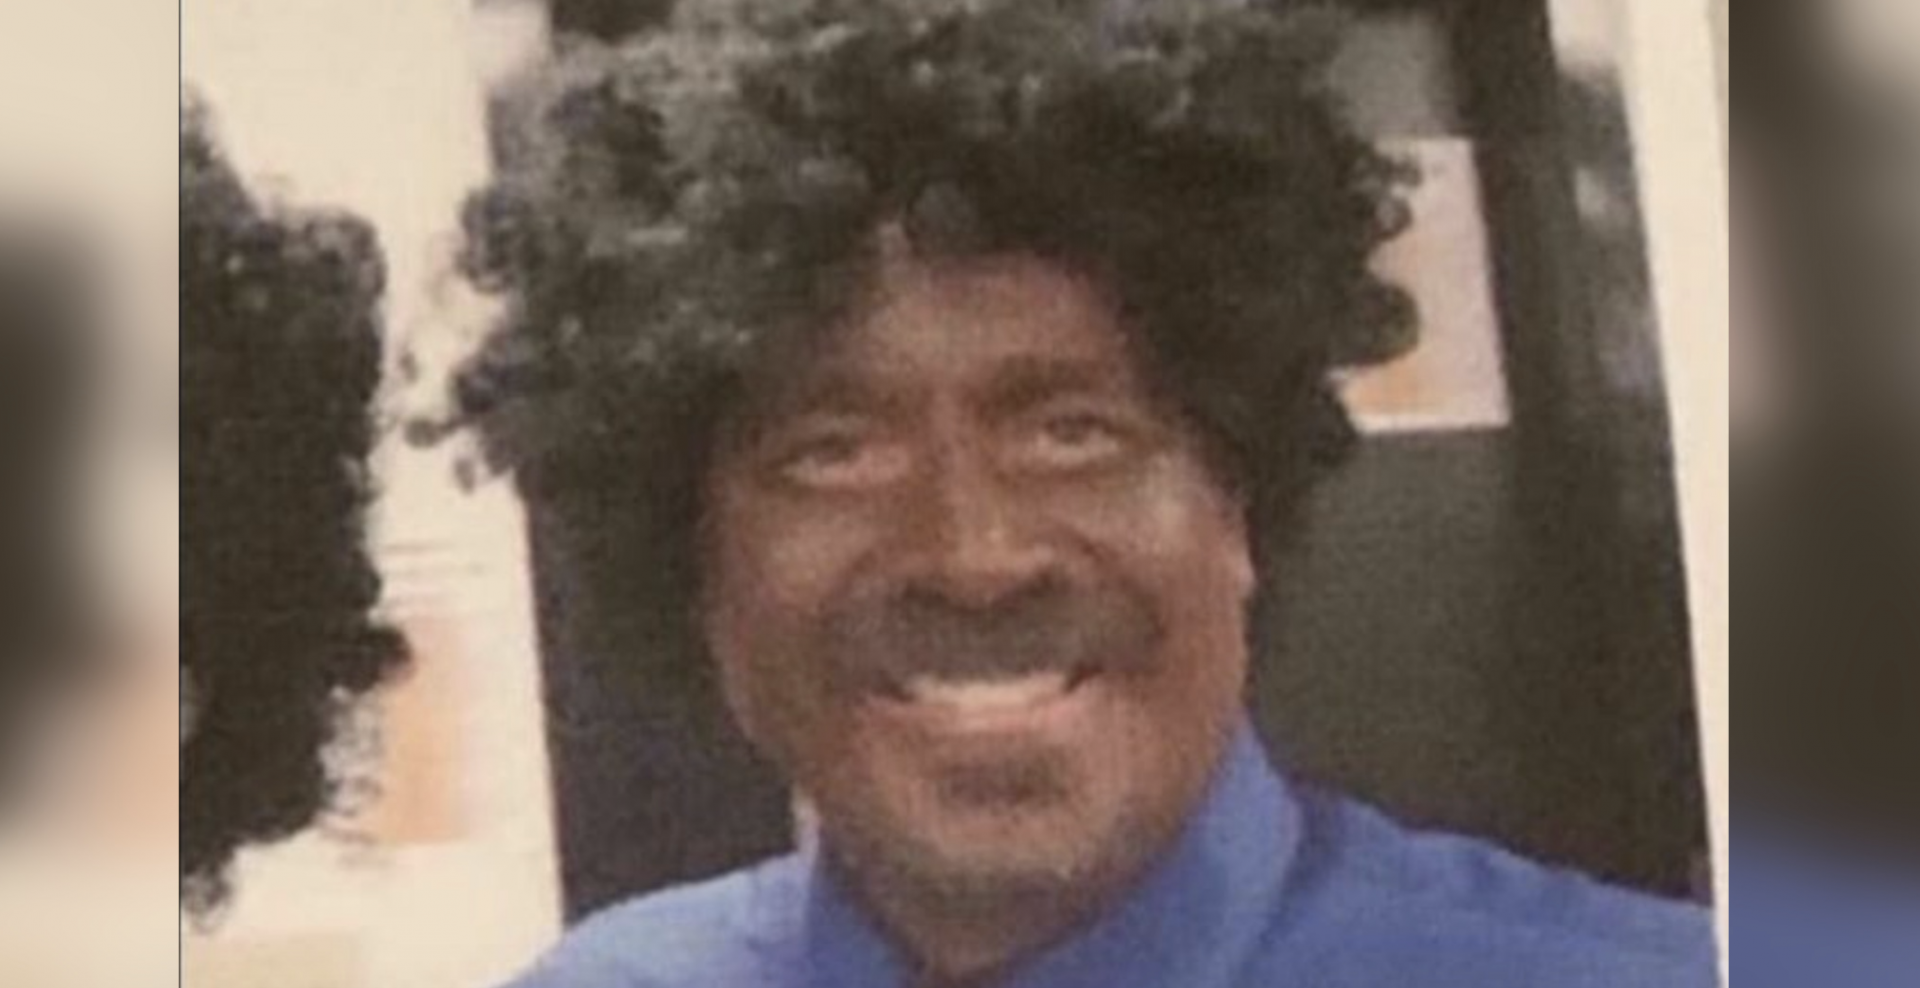 Langley principal and district apologize for blackface photo in yearbook